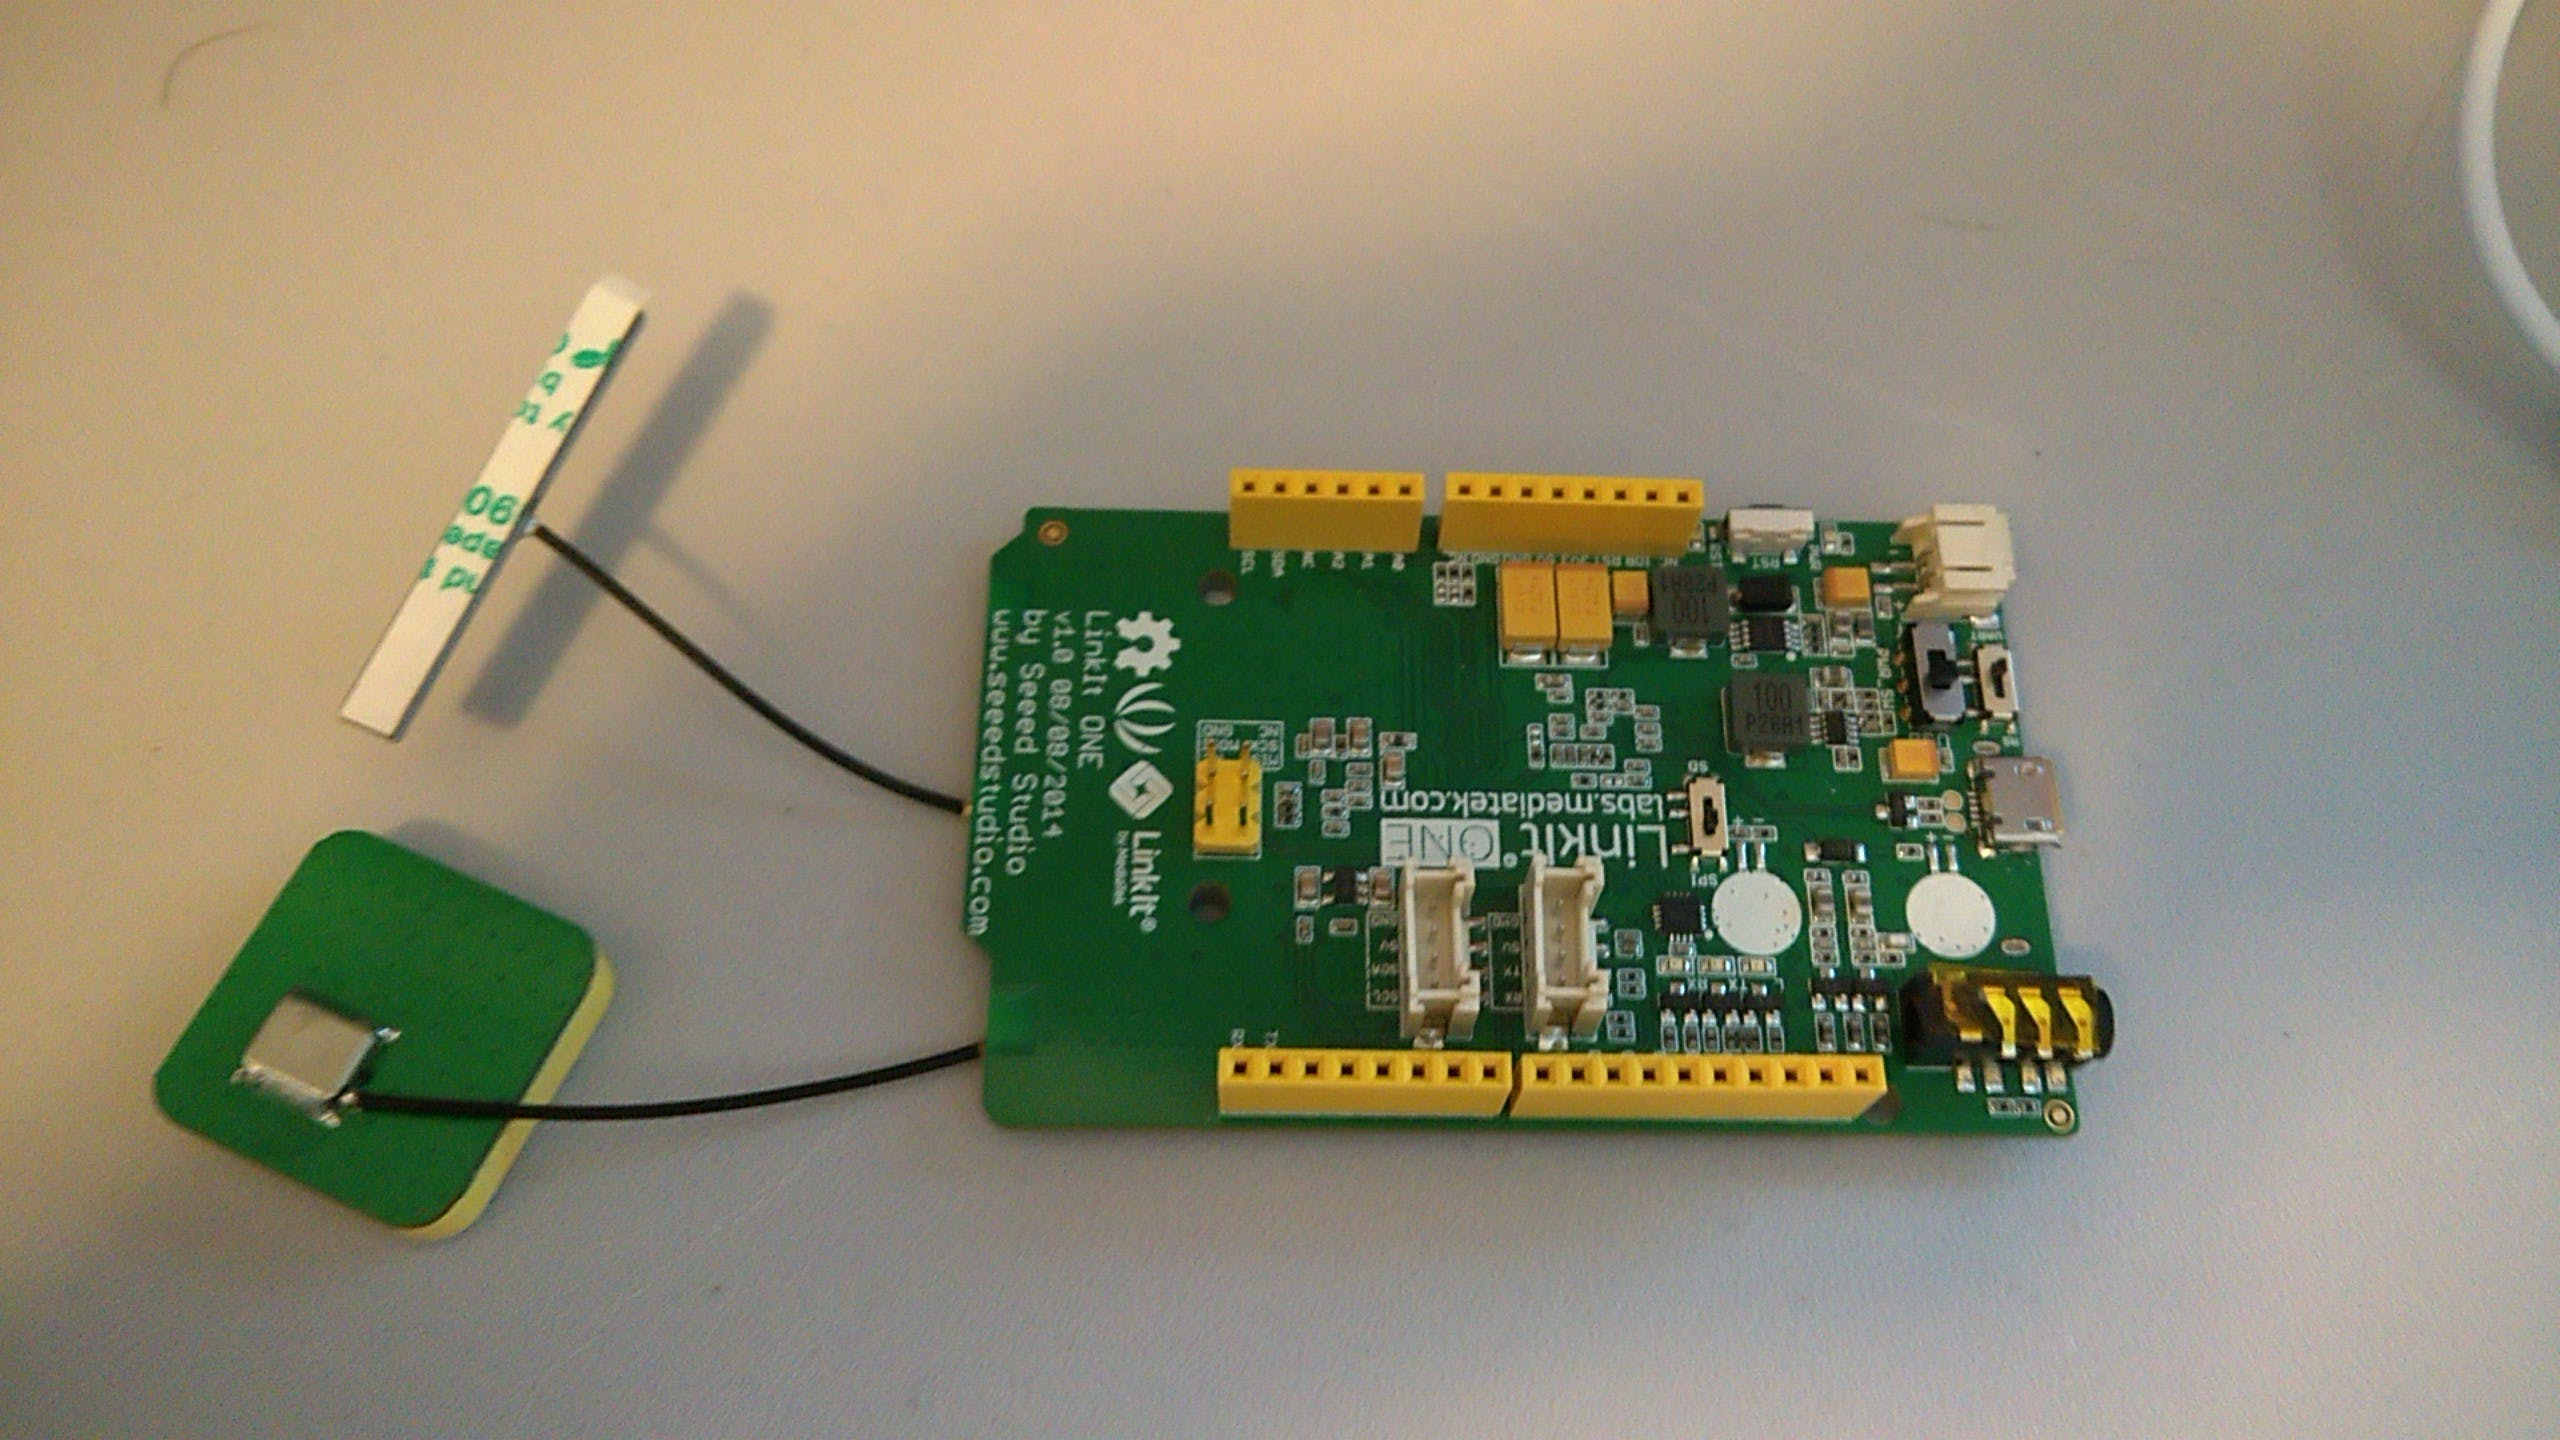 LinkIt One with GPS and WiFi modules hooked up